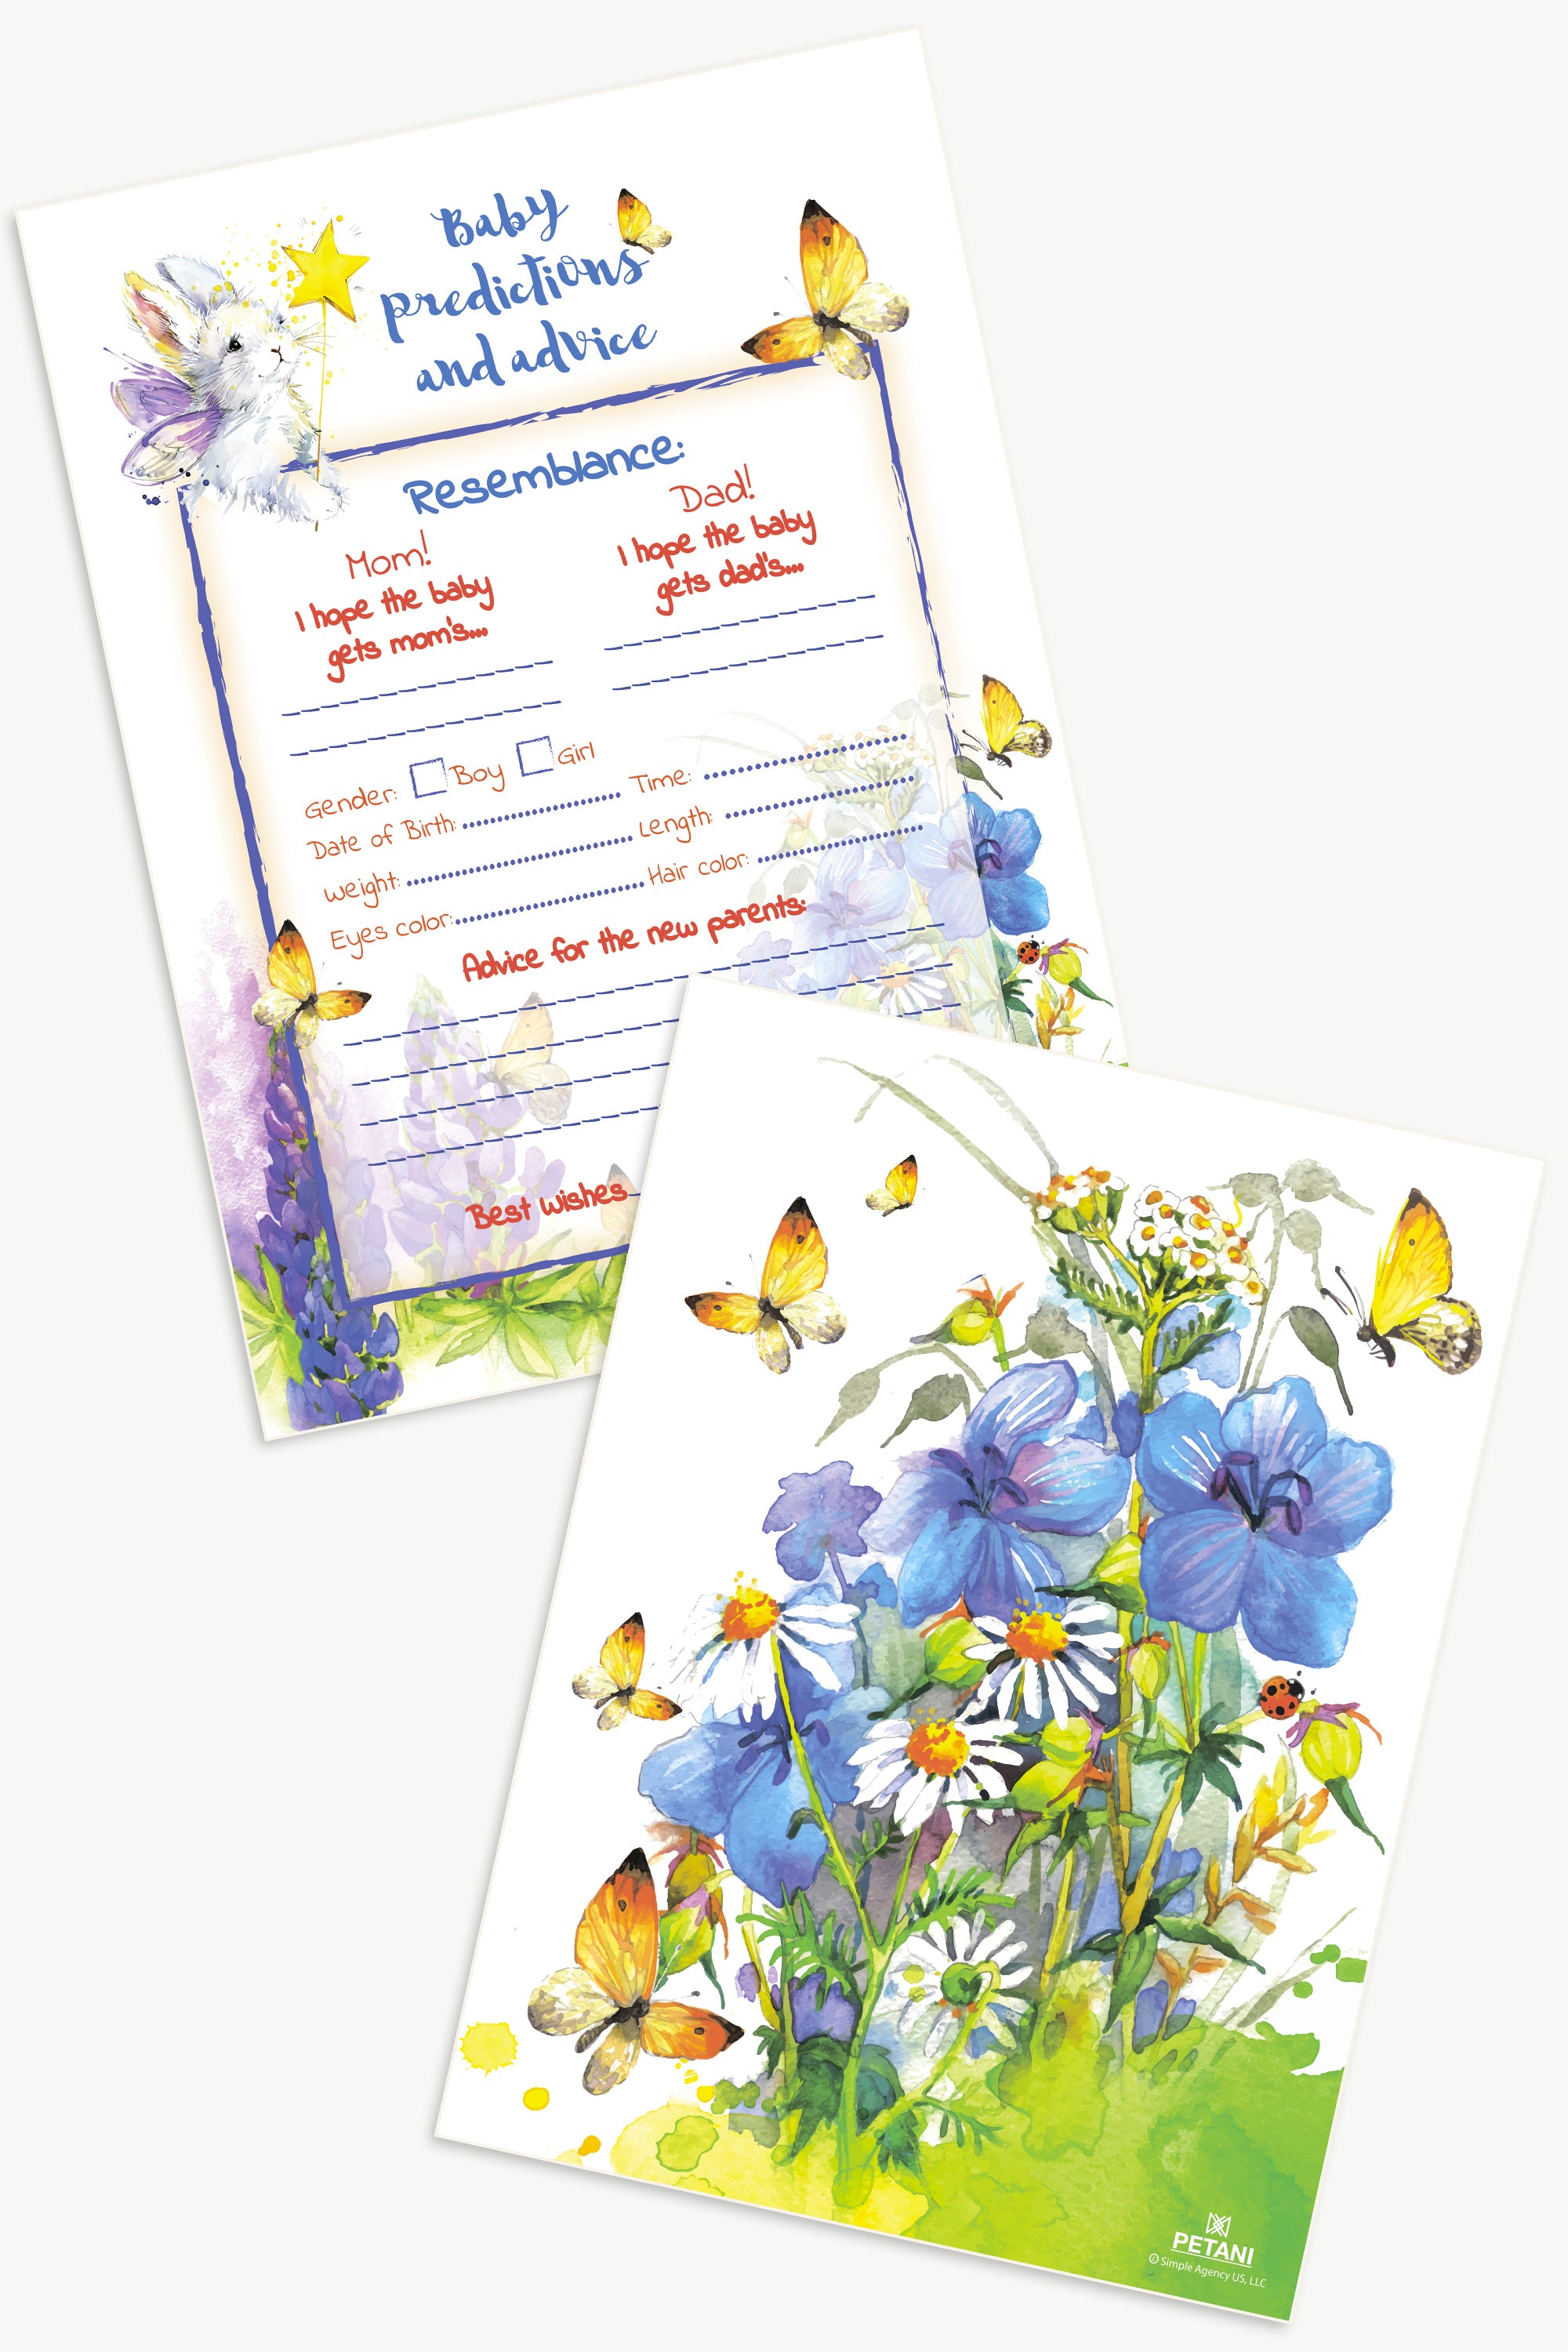 Baby Shower Invitations For Boys Design The Best For The Special Baby Prediction and Advice Cards, 50 Baby Shower Invitations Game,  Watercolor Design, Plastic